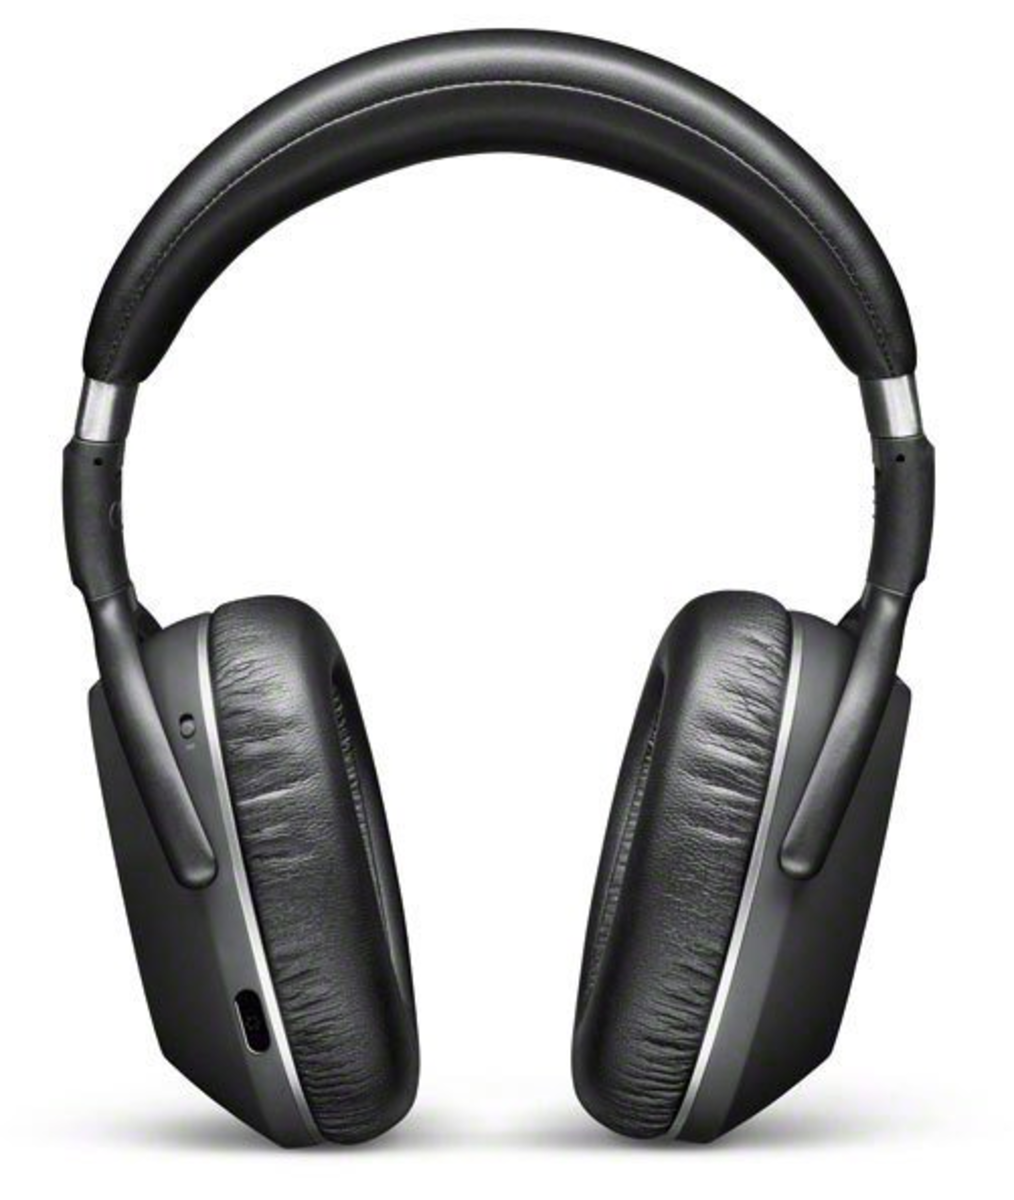 The Sennheiser PXC 550 Wireless Headphones